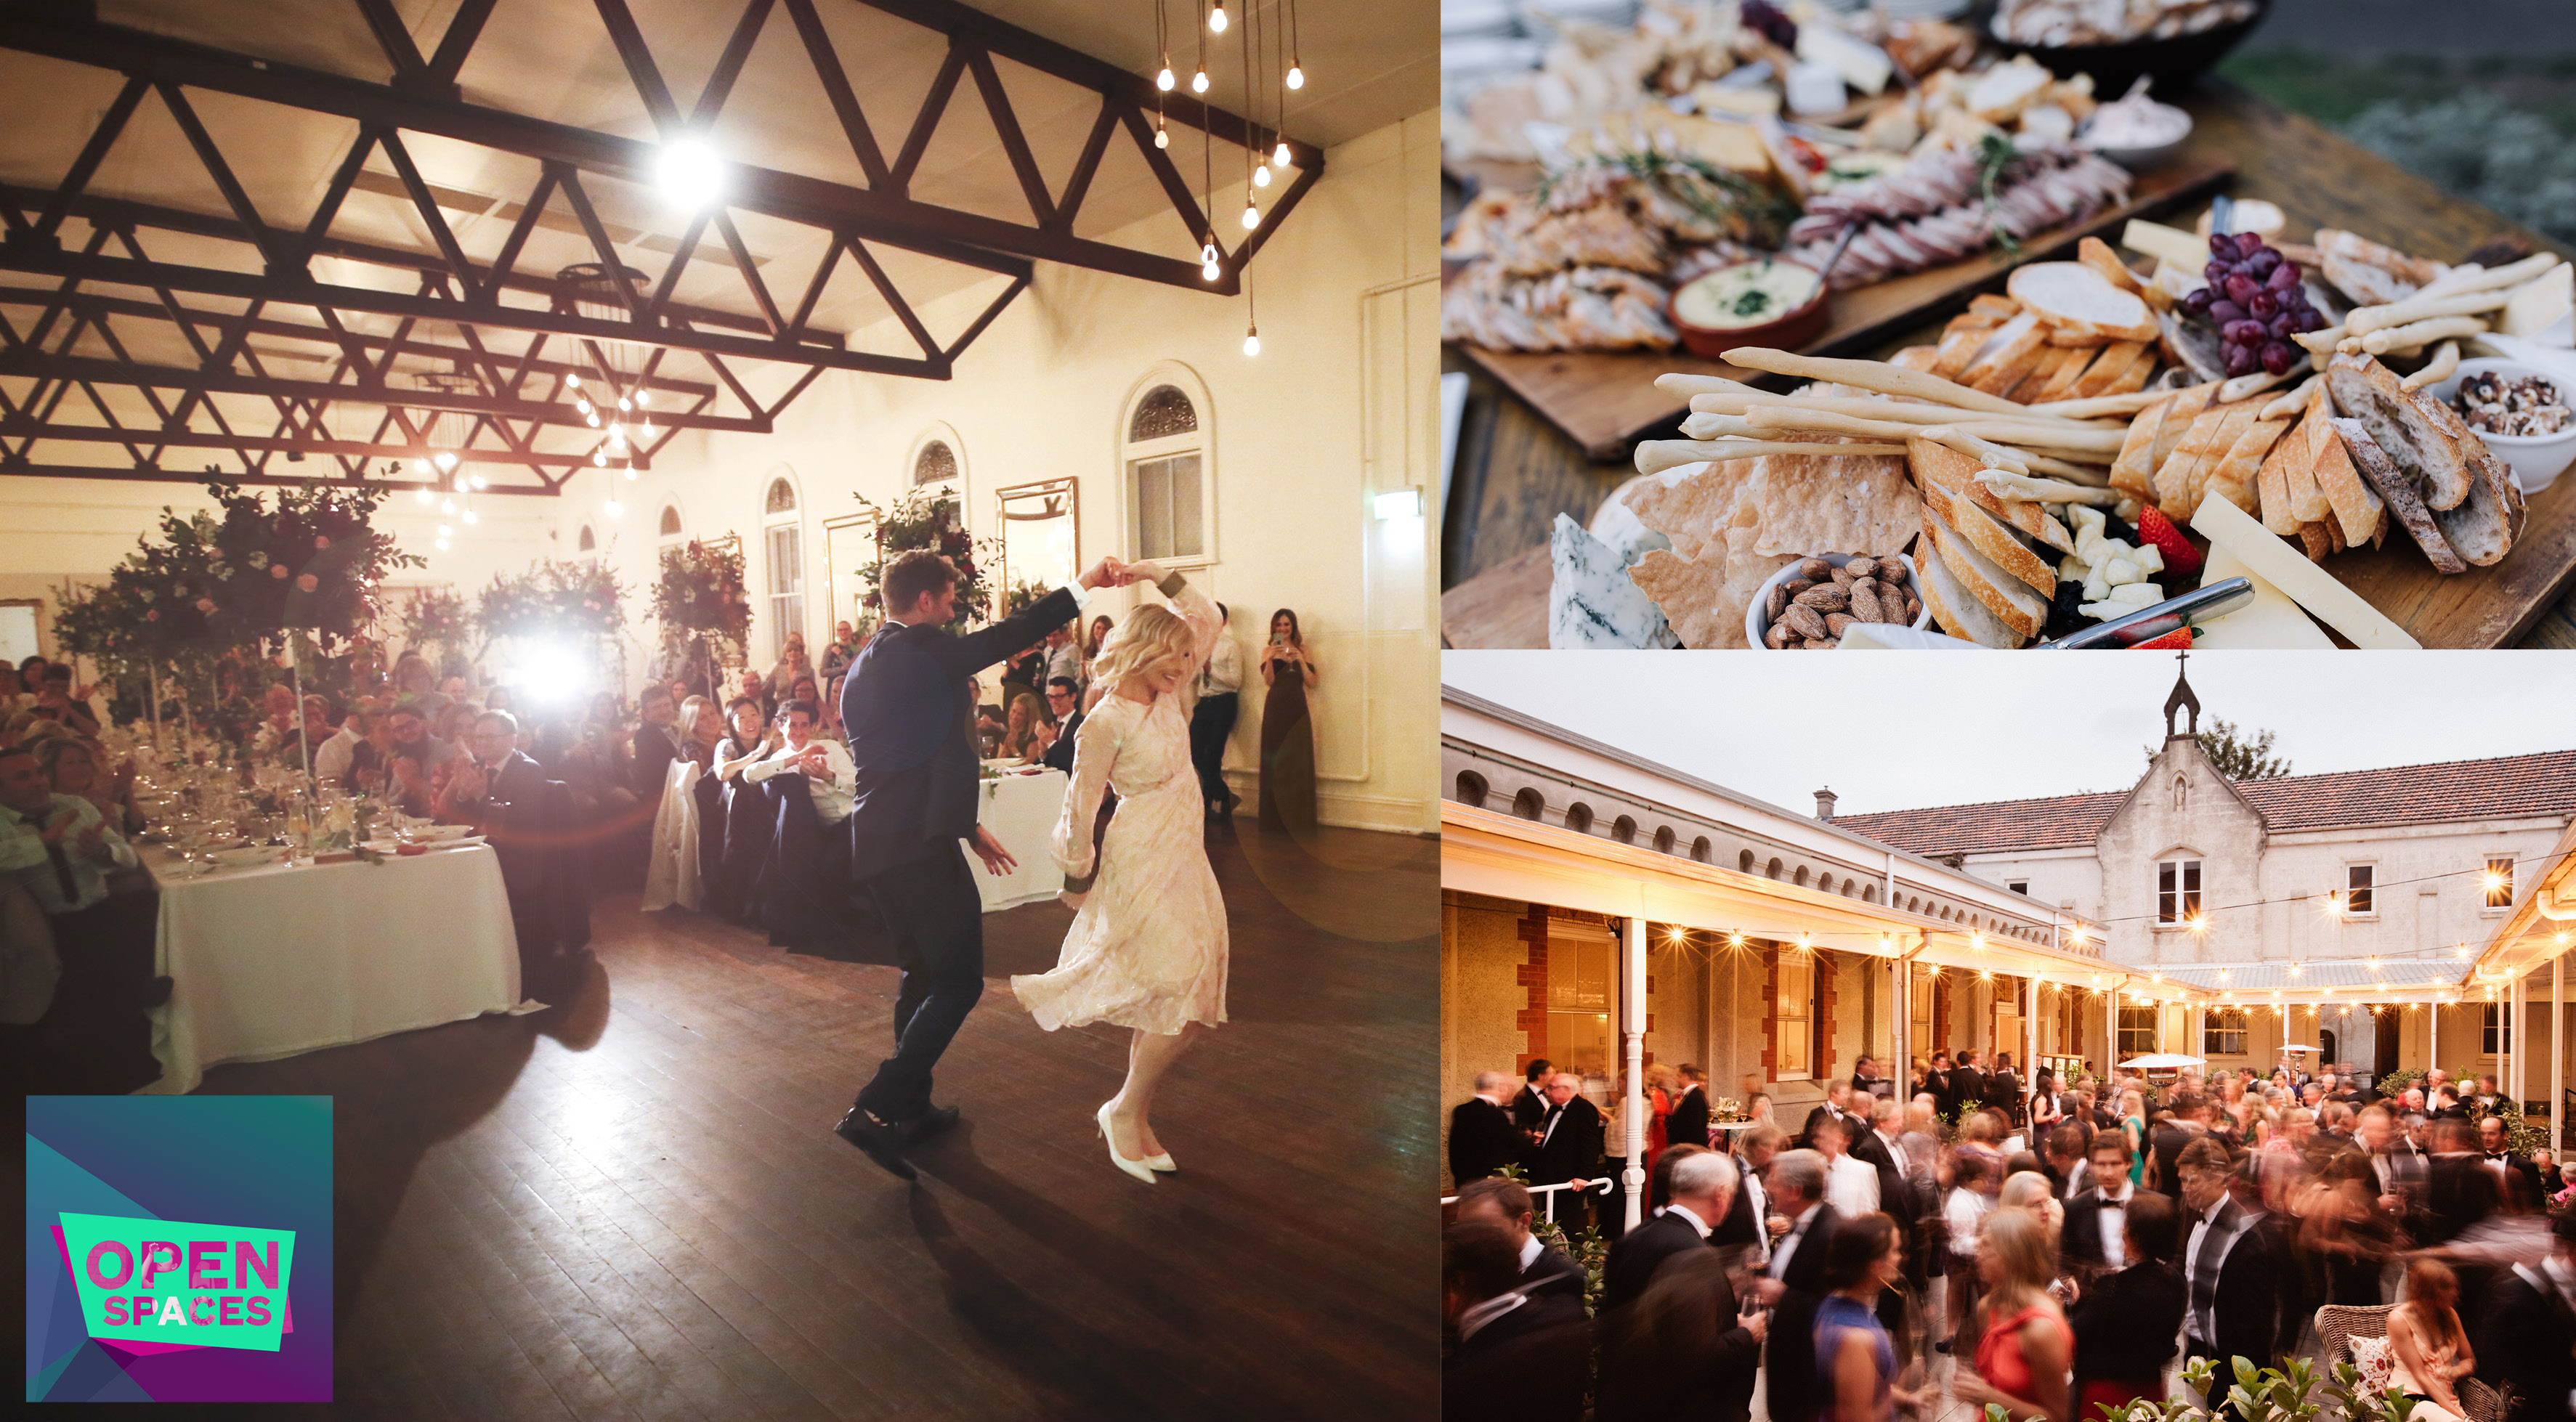 open spaces 18 abbotsford convent melbourne bursaria fine foods abbotsford convent weddings events